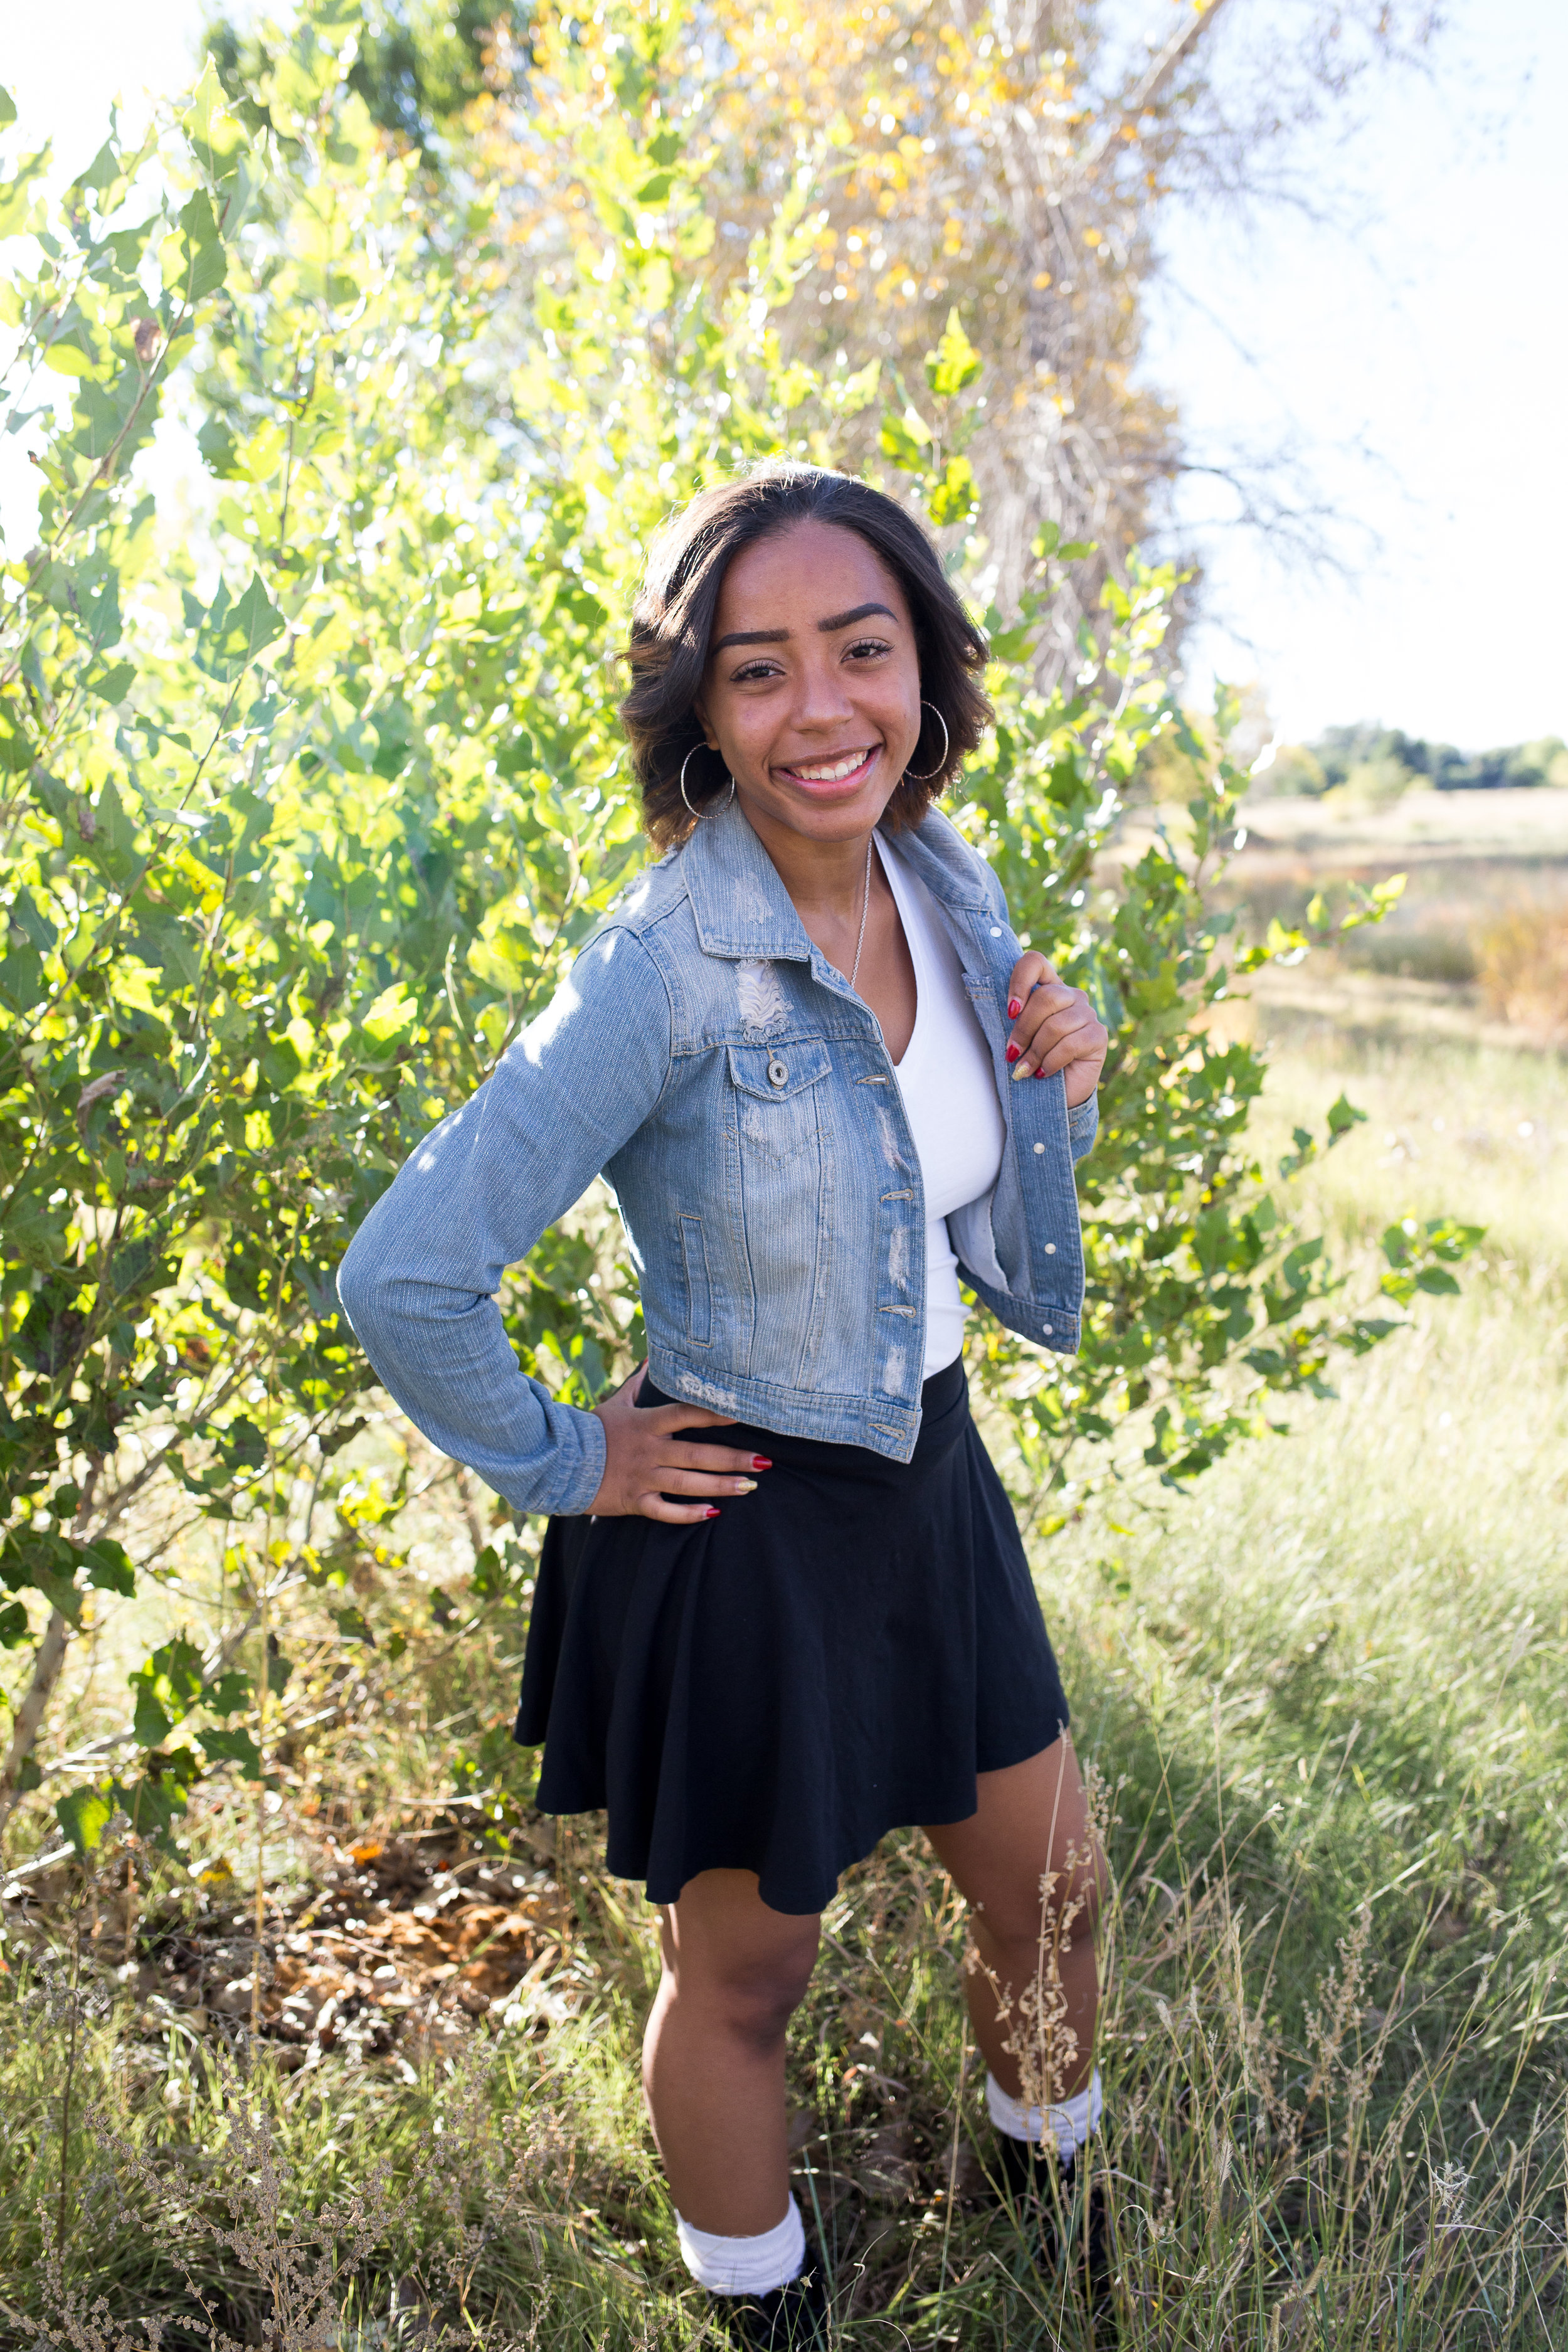 Girl in jean jacket standing among the green trees at Fountain Creek Regional Park in Colorado Springs, CO for senior photos Stacy Carosa Photography